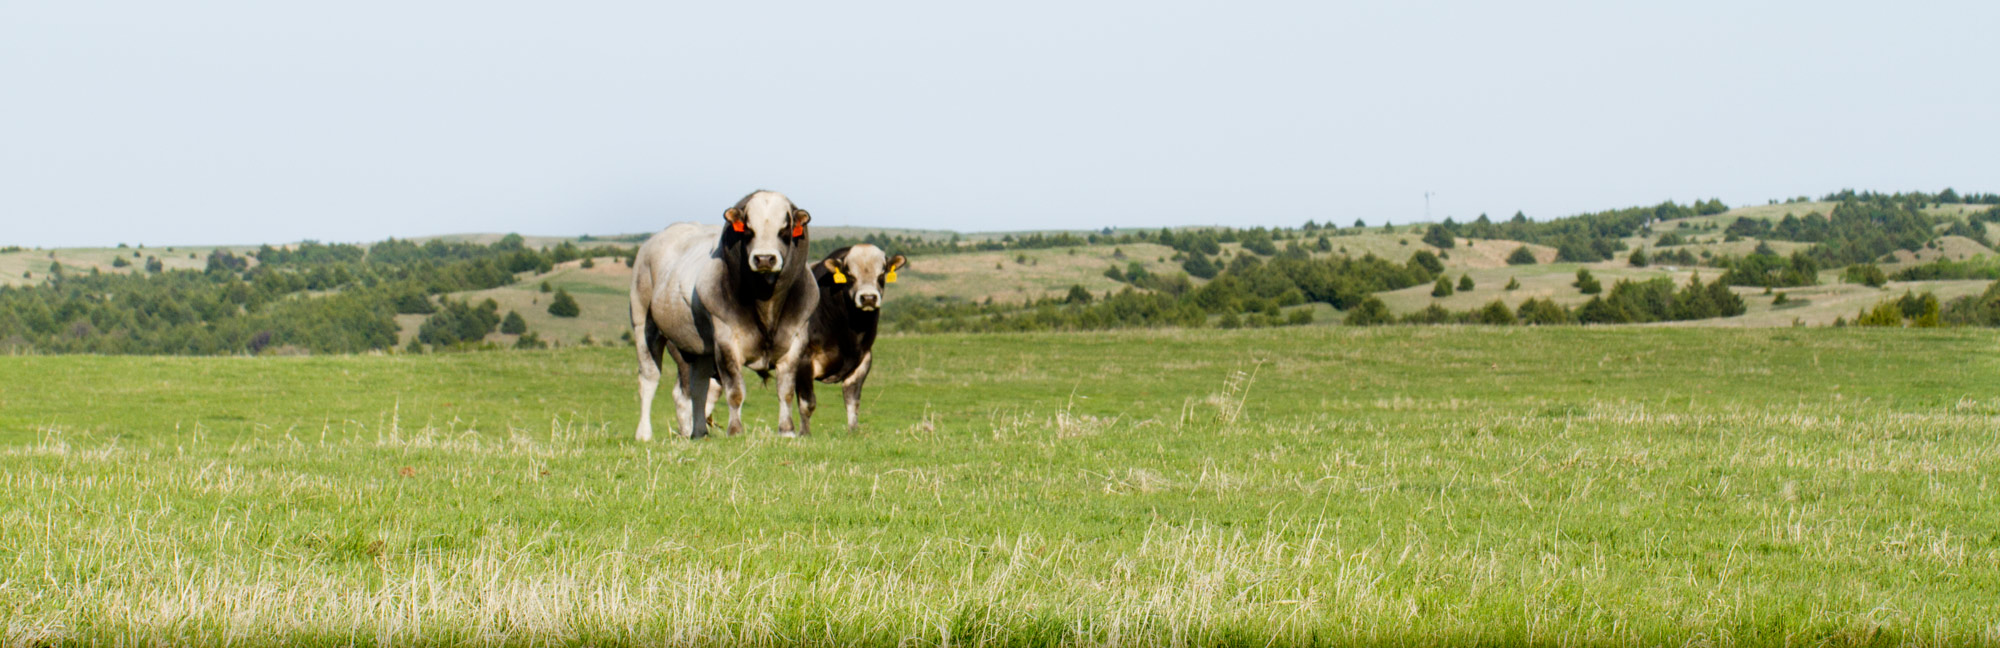 Landscape-Cattle.jpg